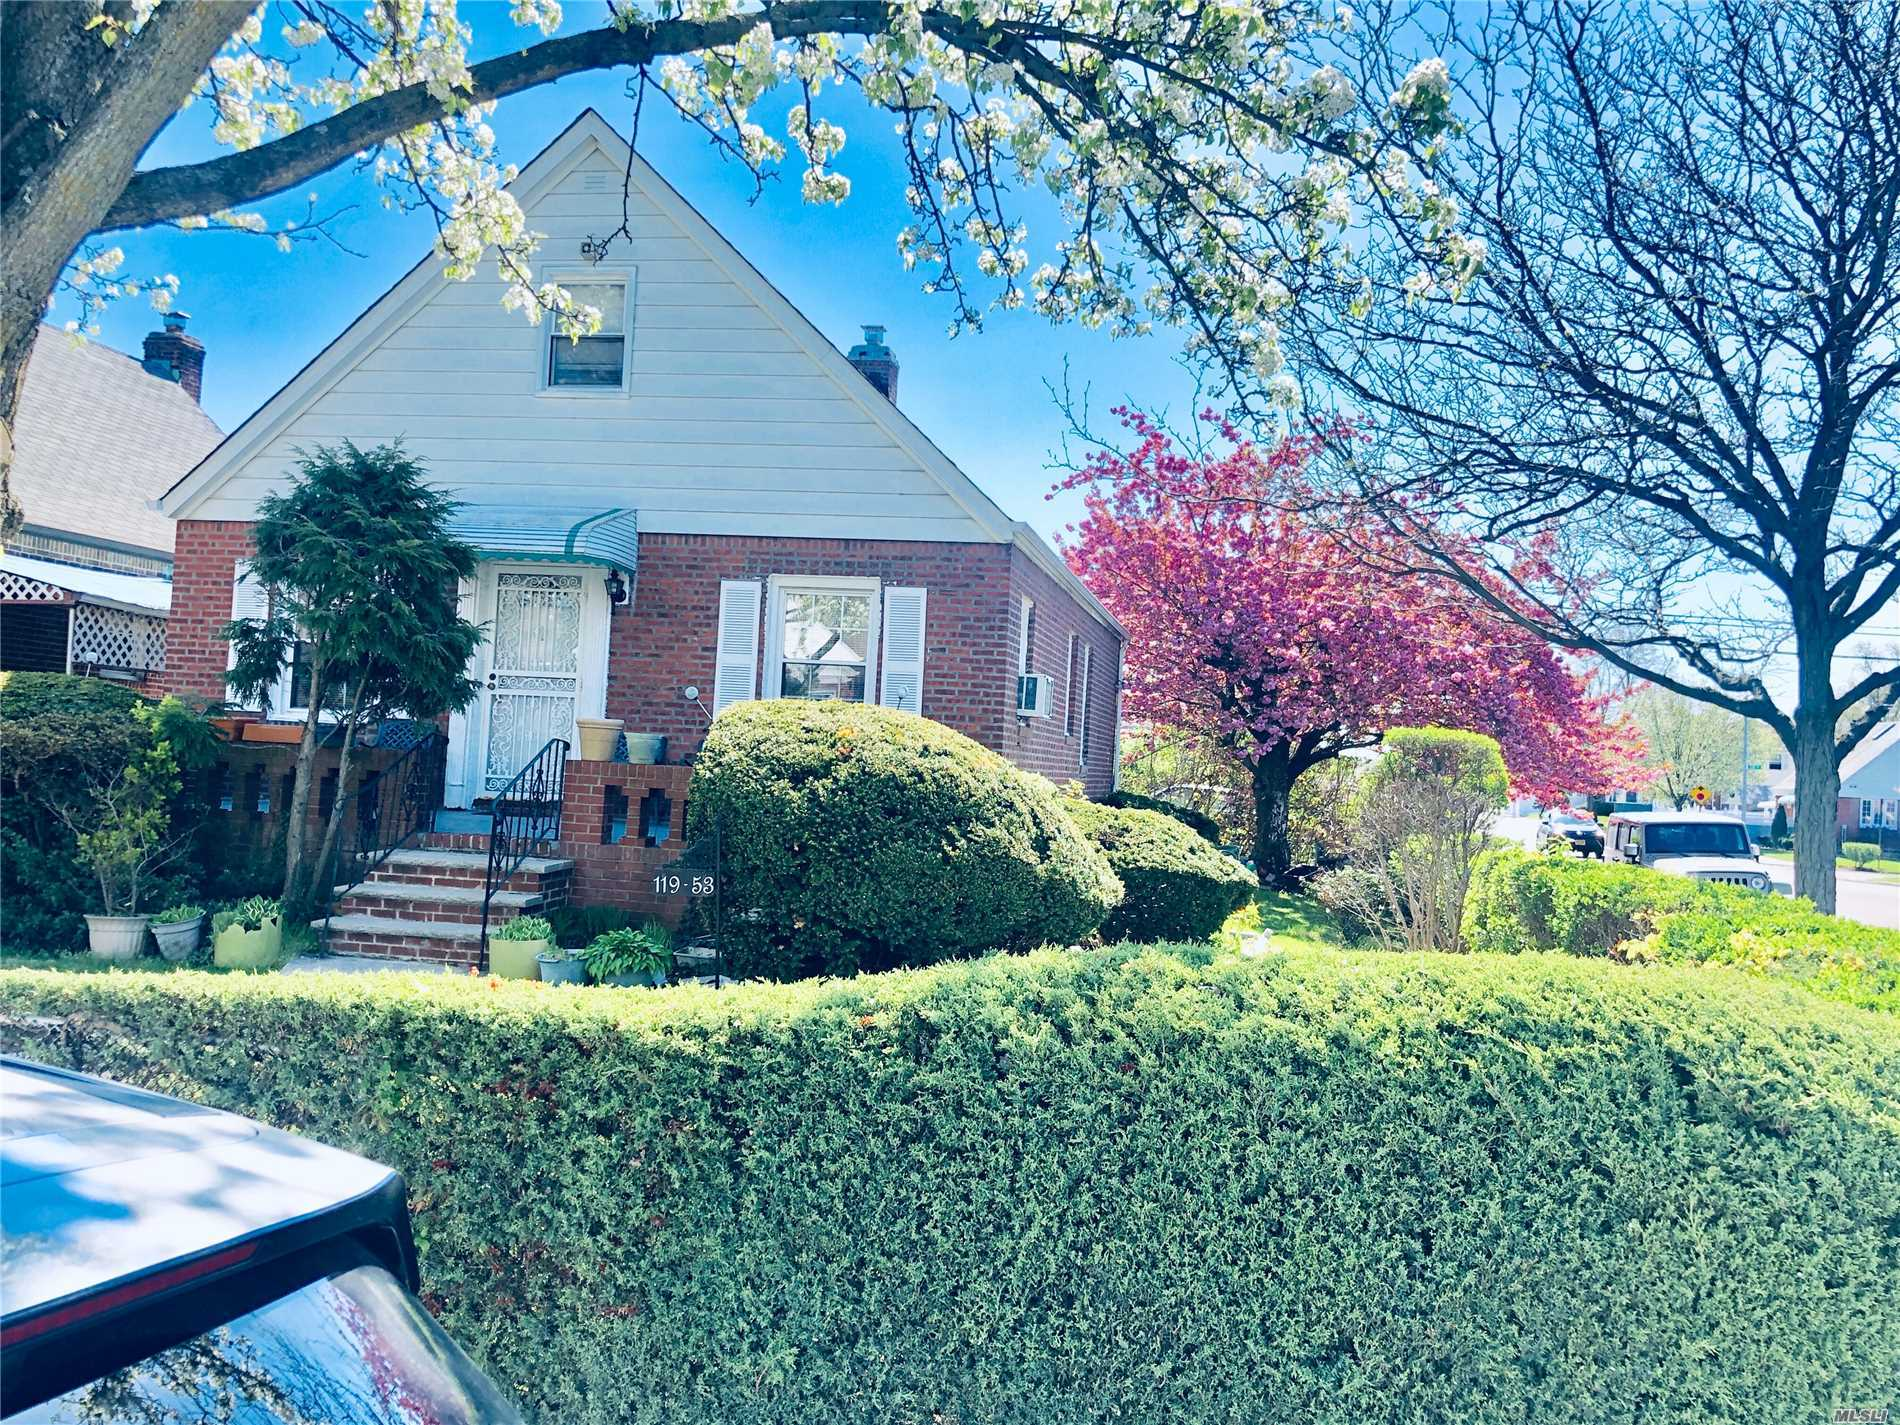 No Offer Considered Accepted Until Contracts Are Fully Executed and deposit check is clear in sellers attorney escrow account Amazing One Family 4 Bedrooms , 2 Full Bath Corner Property With Pvt Driveway And 2 Car Garage...